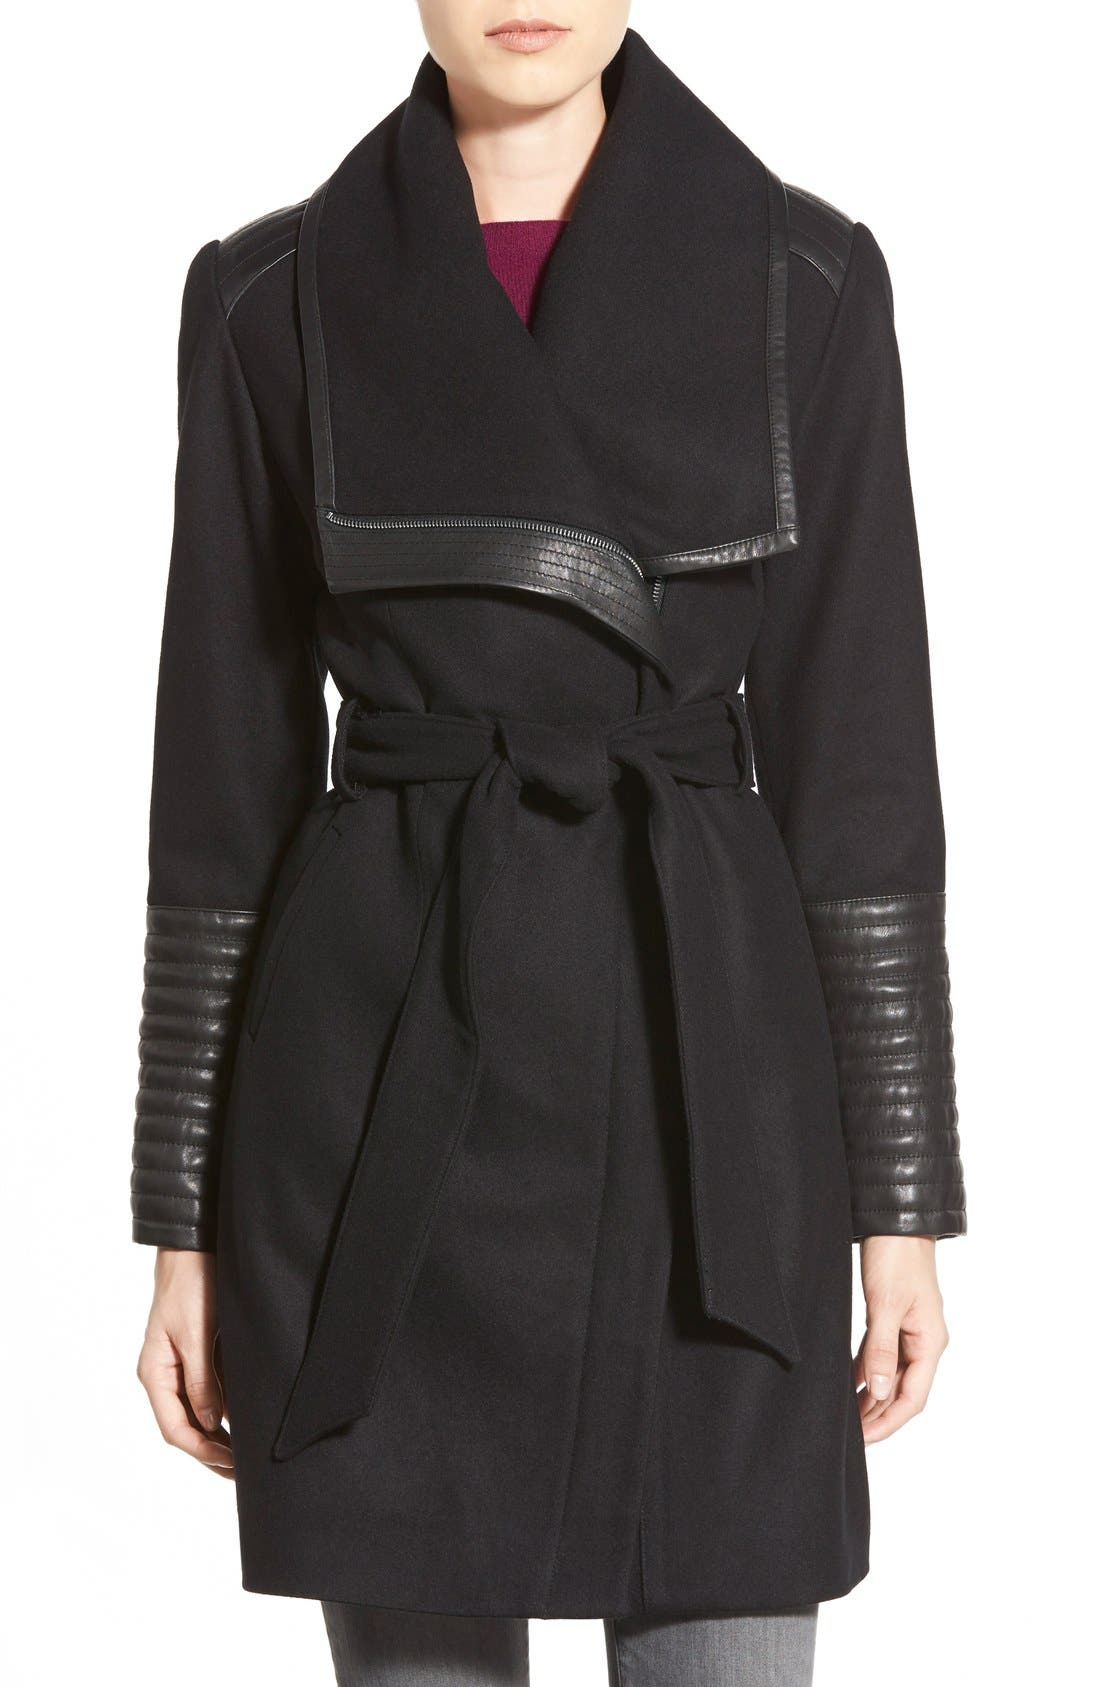 Alternate Image 1 Selected - Belle Badgley Mischka 'Lorian' Faux Leather Trim Belted Asymmetrical Wool Blend Coat